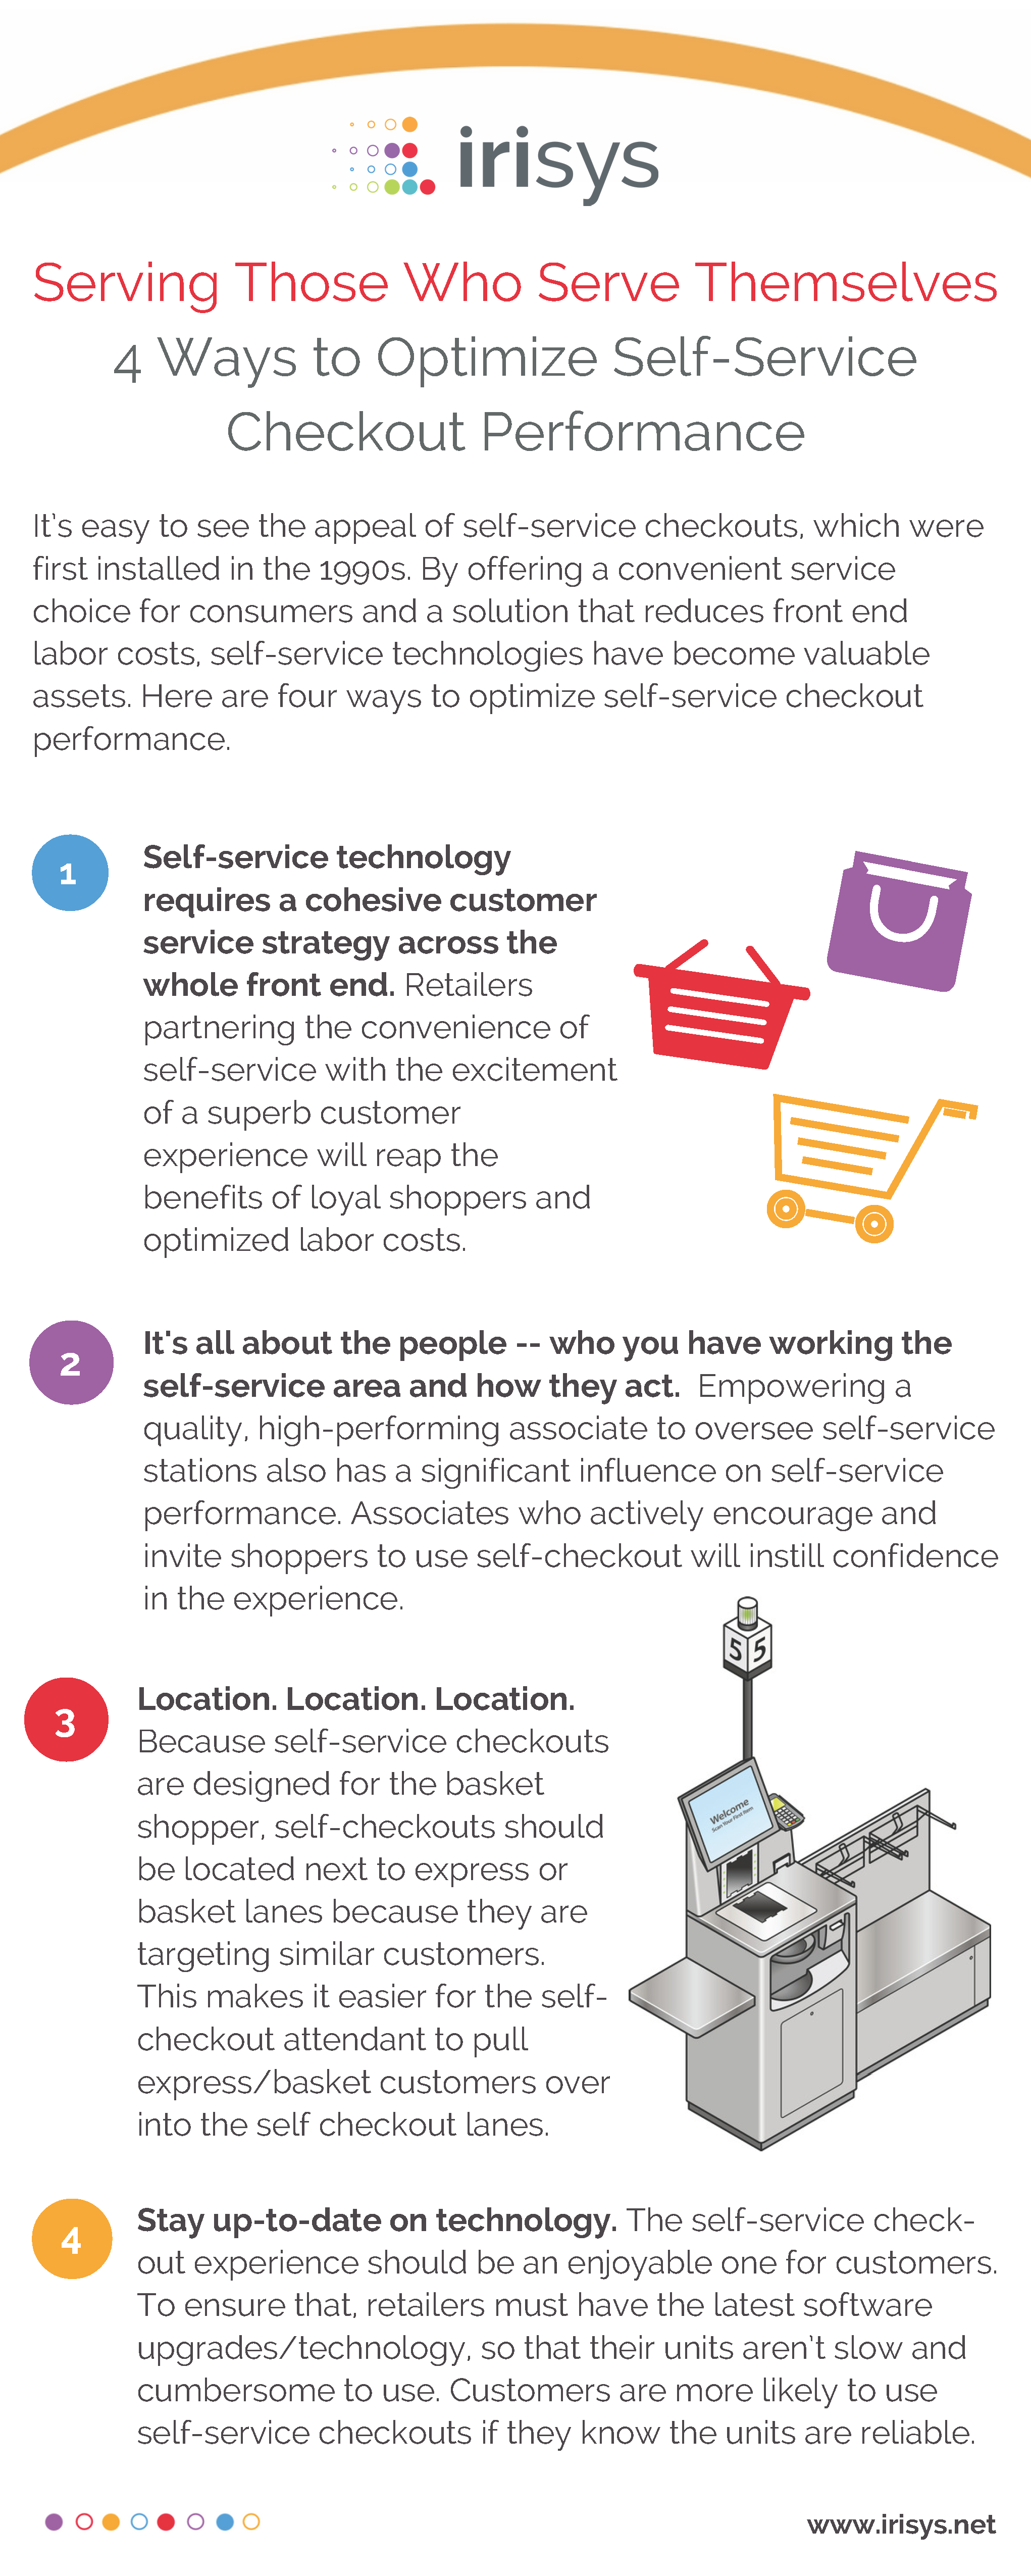 Irisys - Self-Service Infographic FINAL 1.4.2017.png